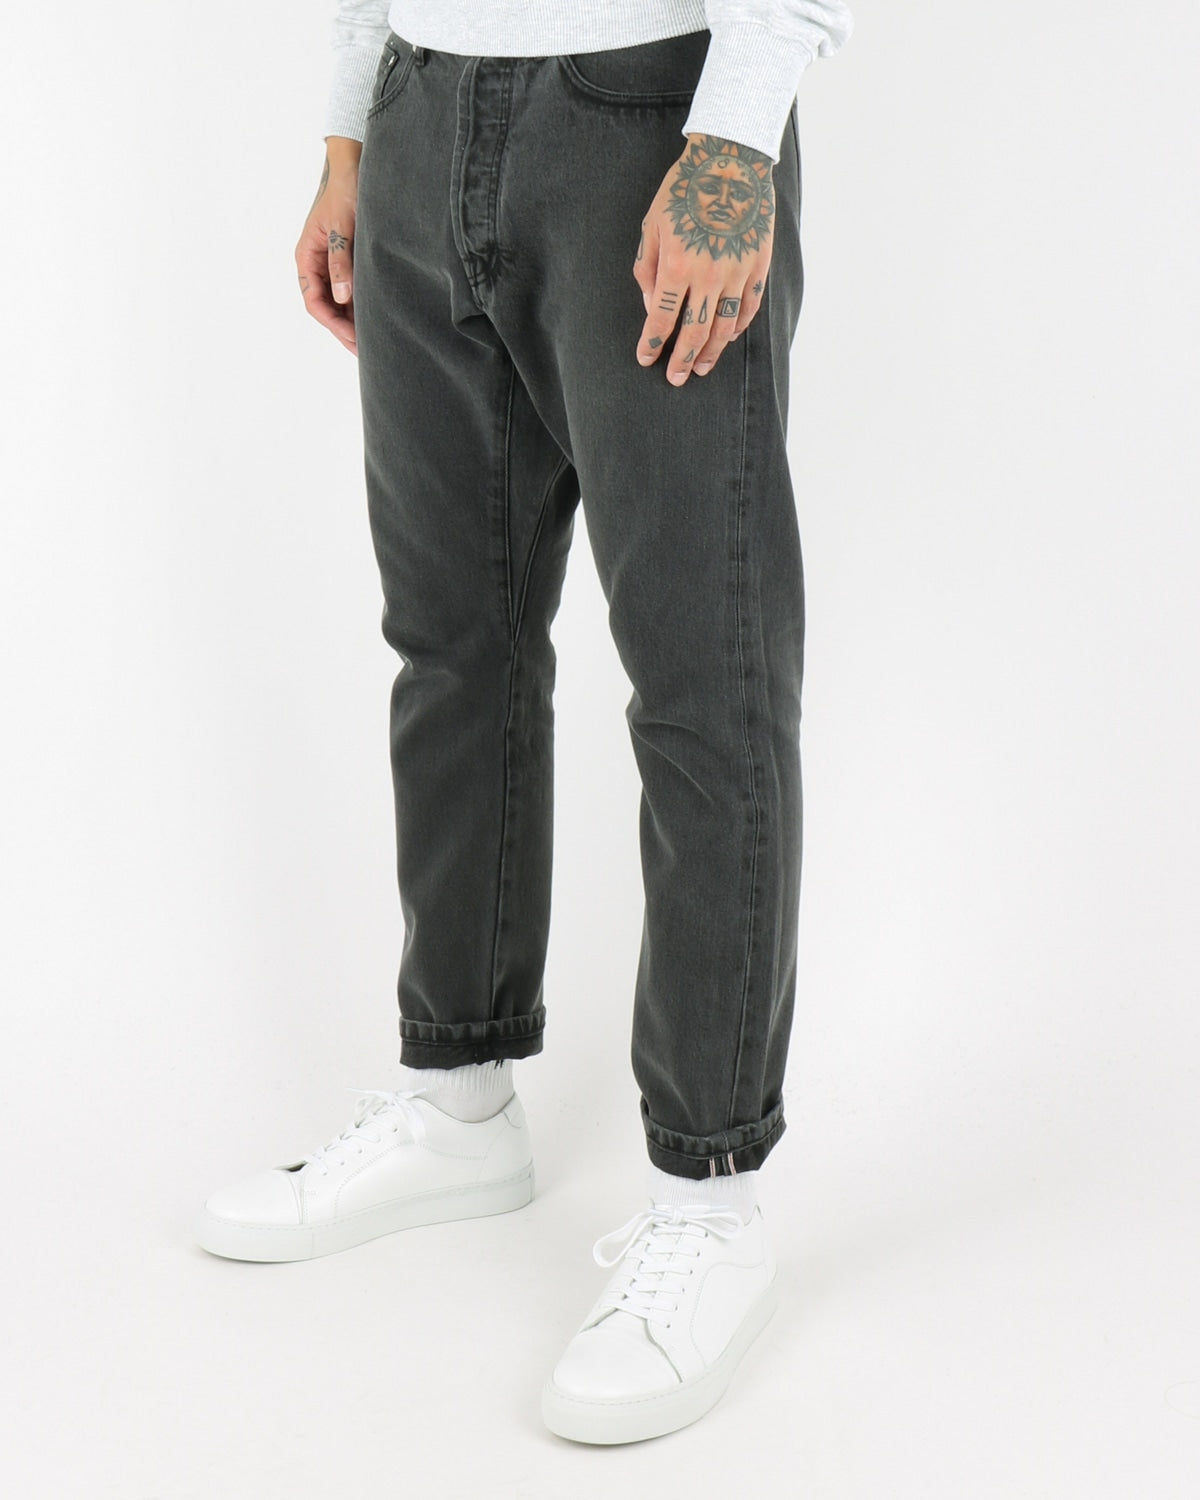 han kjobenhavn_drop crotch jeans_black stonewash_view_2_4